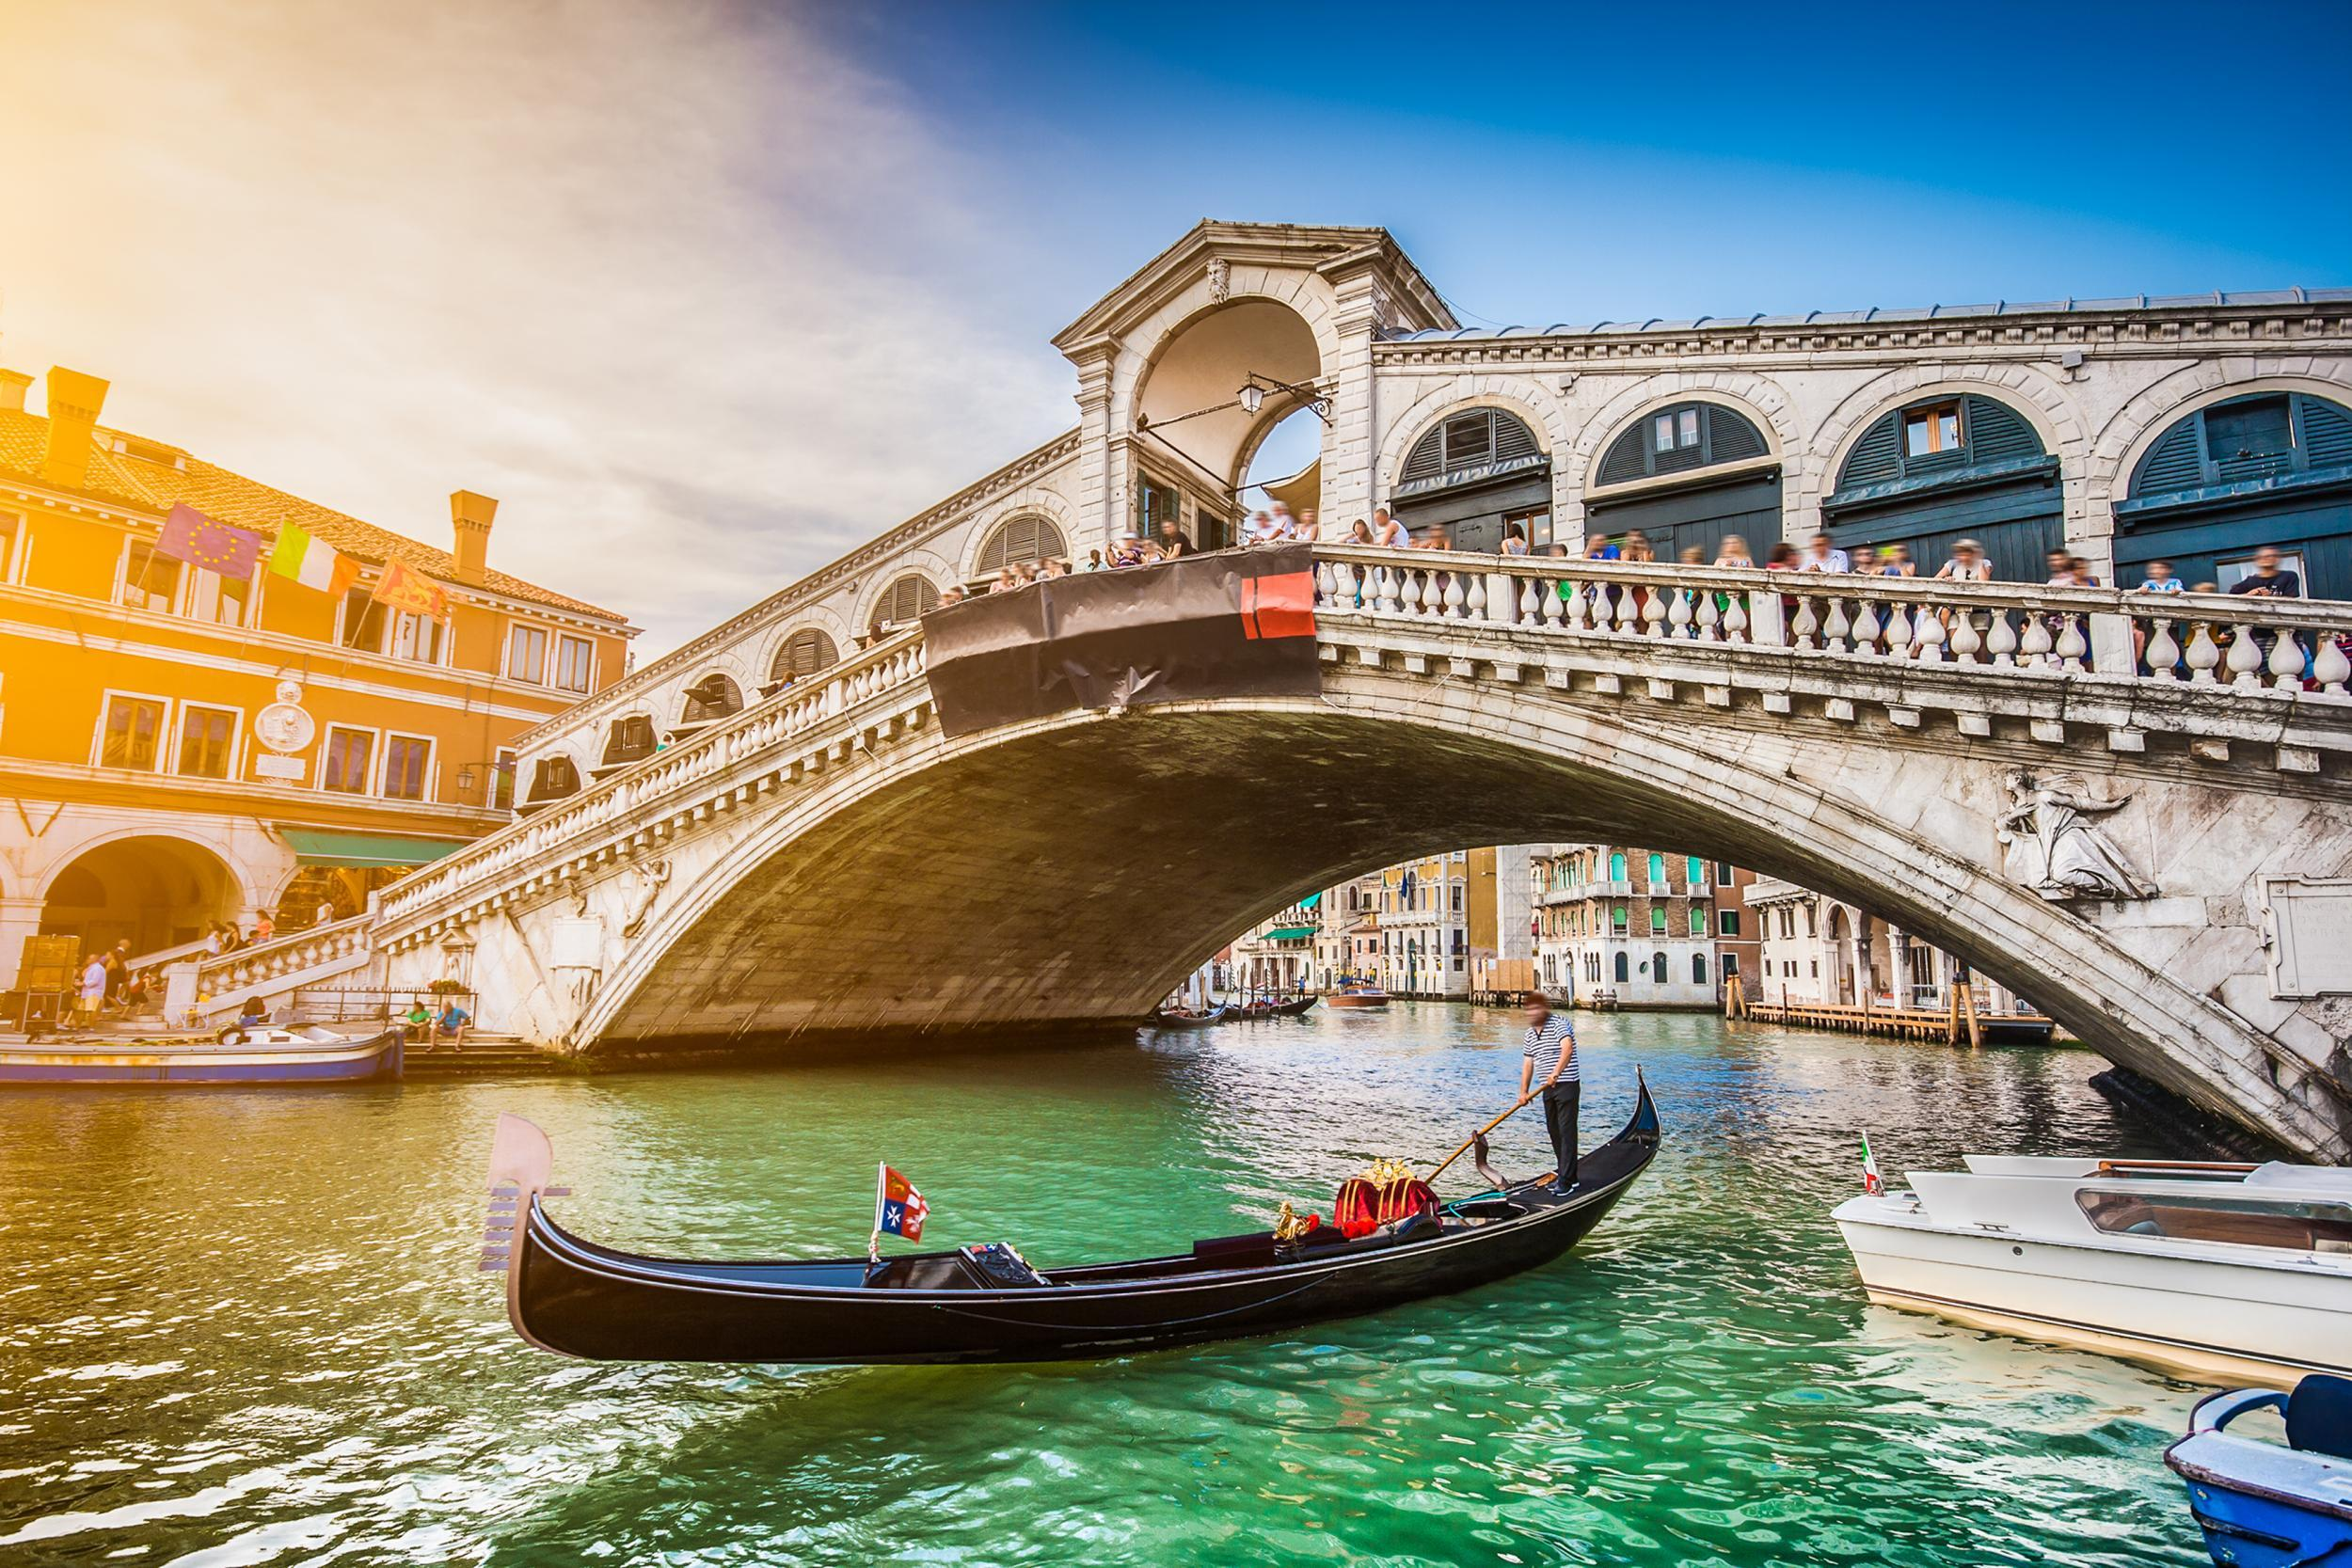 venice restaurant charges tourists £970 for meal - they call the